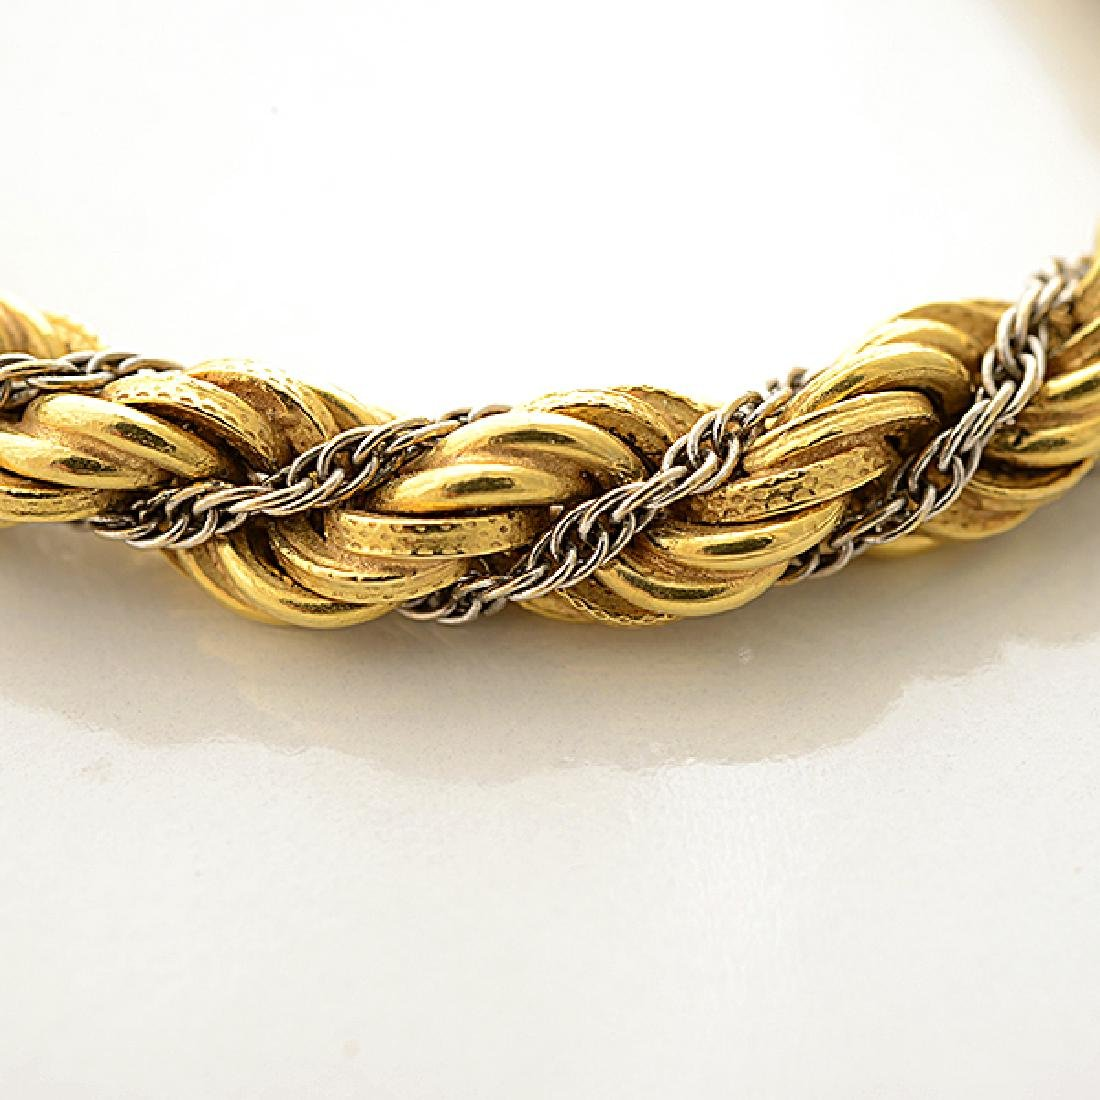 18k Gold Long Chain Necklace. - 2